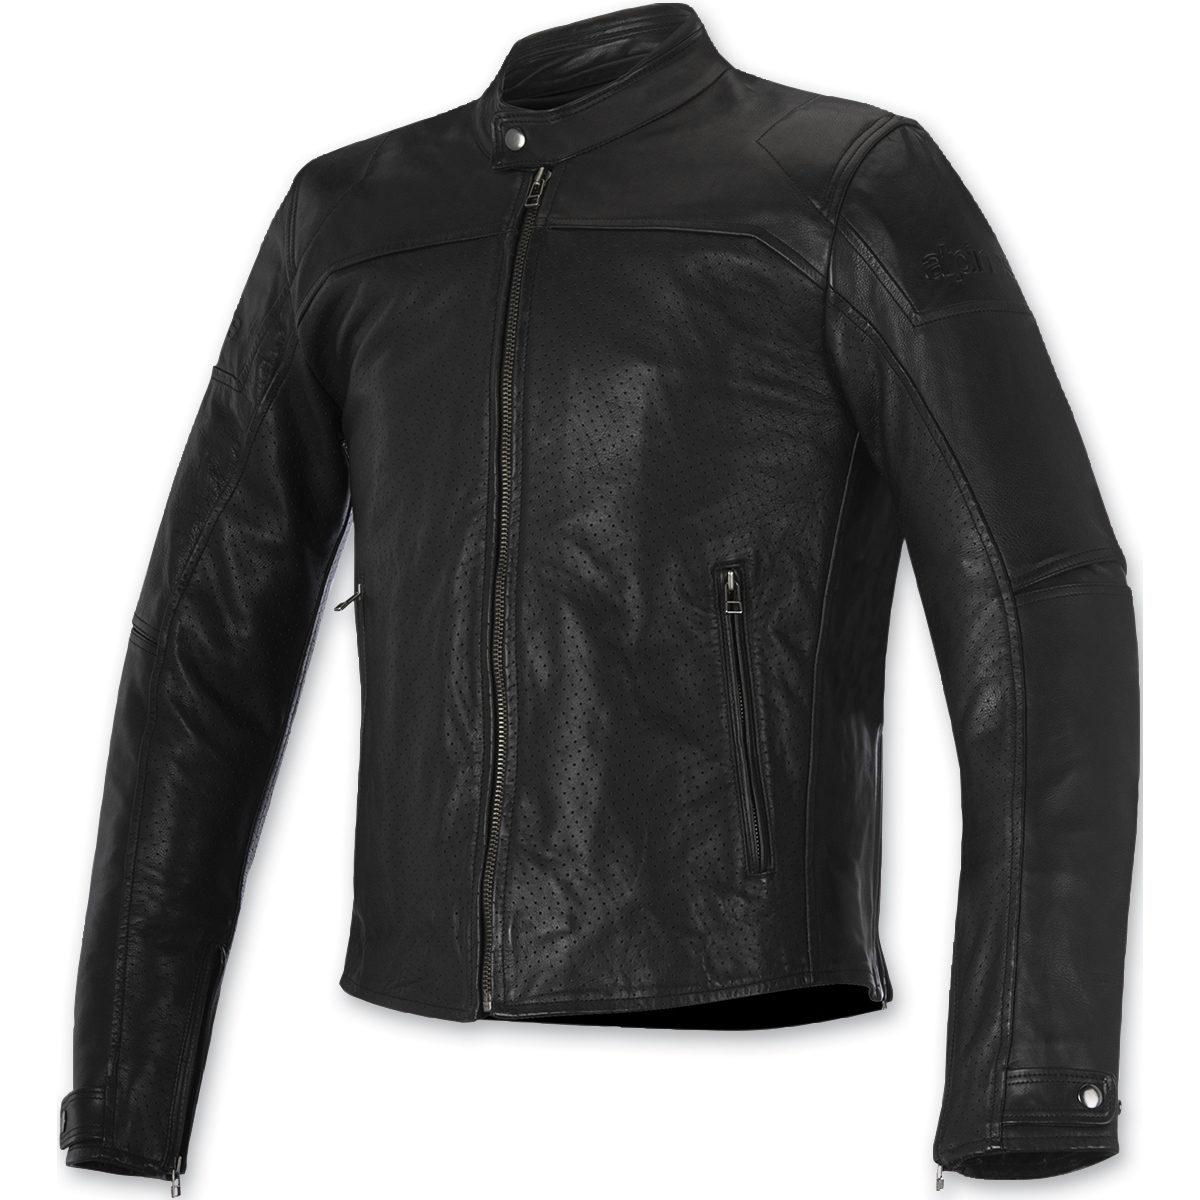 Alpinestars Men's Brera Airflow Black Leather Jacket